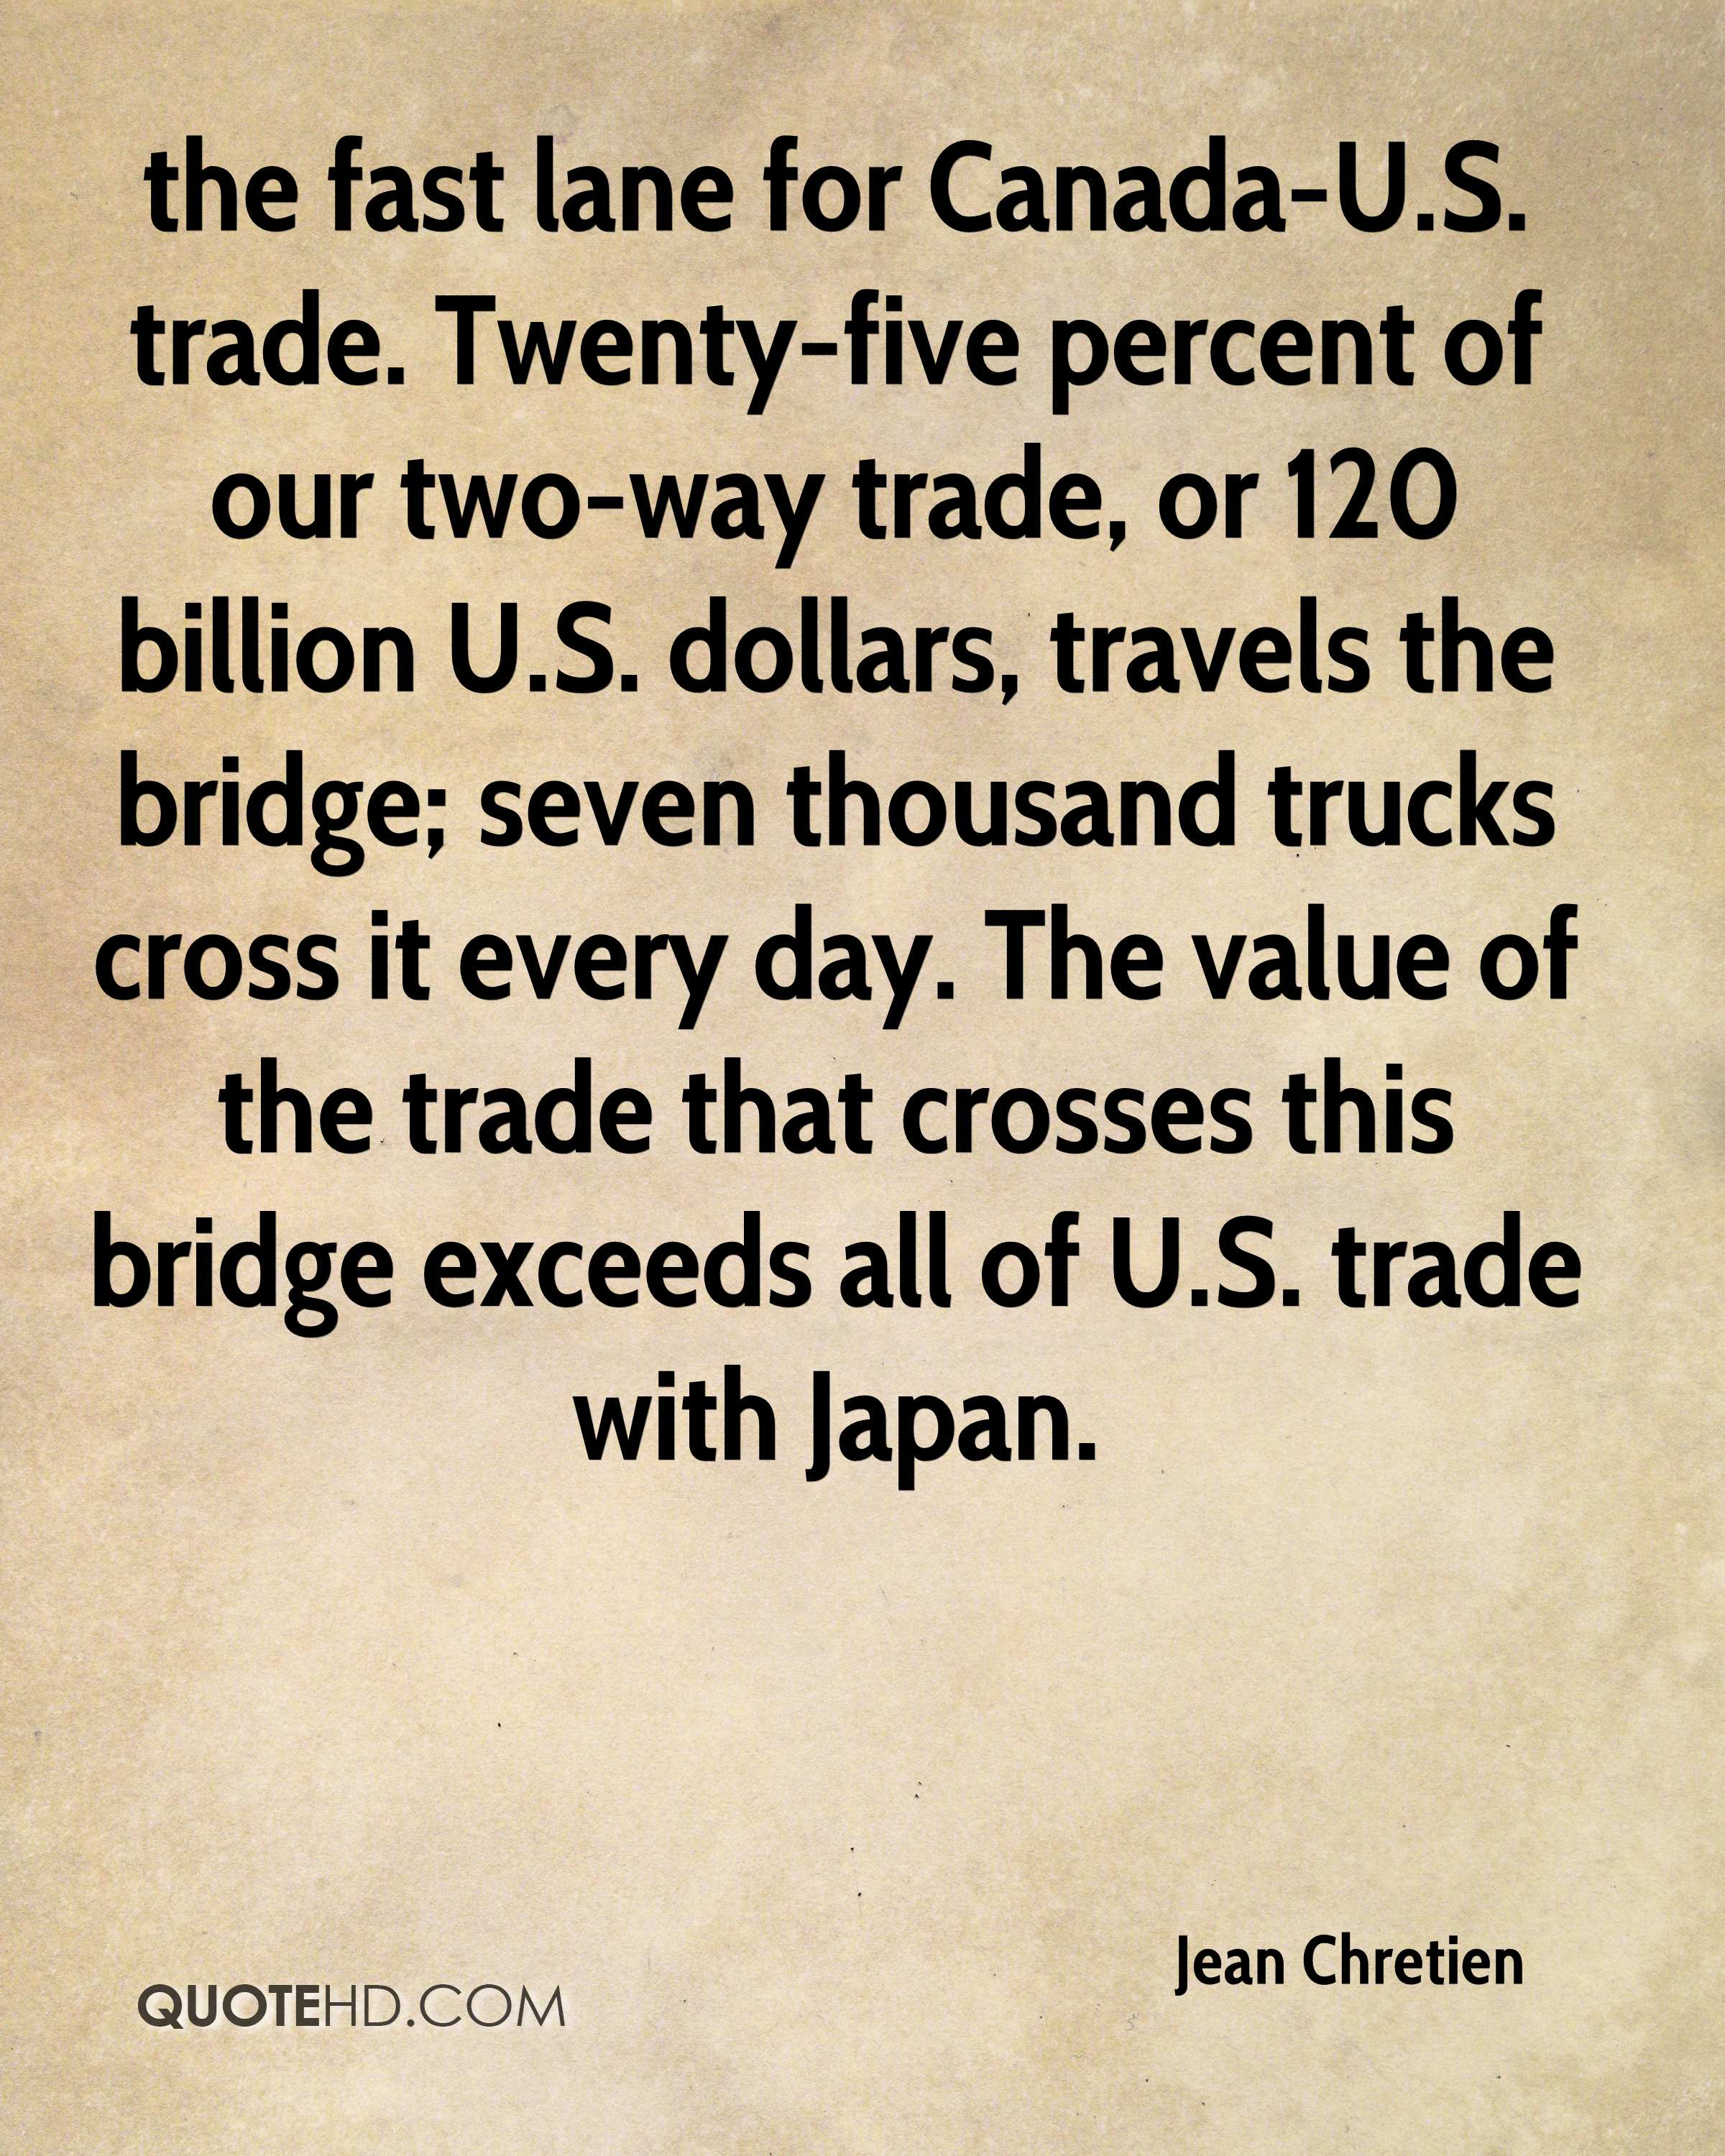 the fast lane for Canada-U.S. trade. Twenty-five percent of our two-way trade, or 120 billion U.S. dollars, travels the bridge; seven thousand trucks cross it every day. The value of the trade that crosses this bridge exceeds all of U.S. trade with Japan.